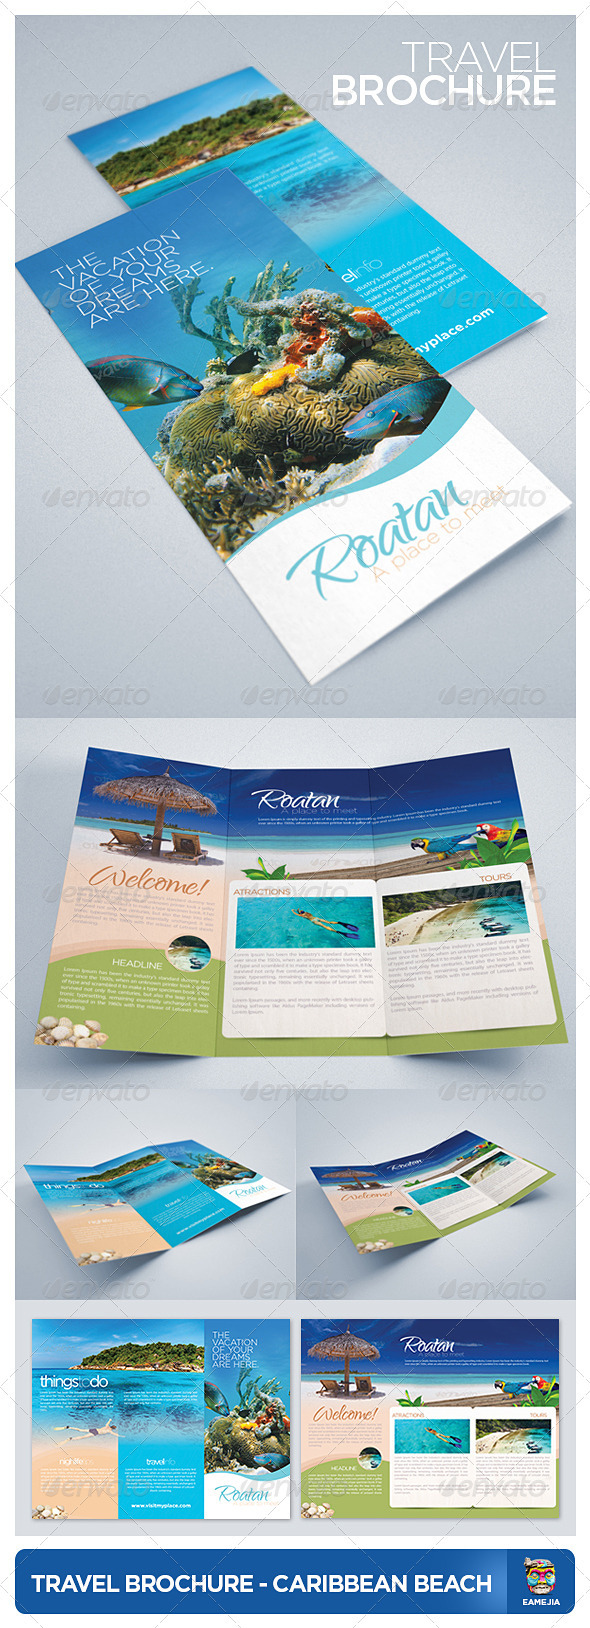 Travel and Tourism Brochure - Caribbean Beach - Brochures Print Templates